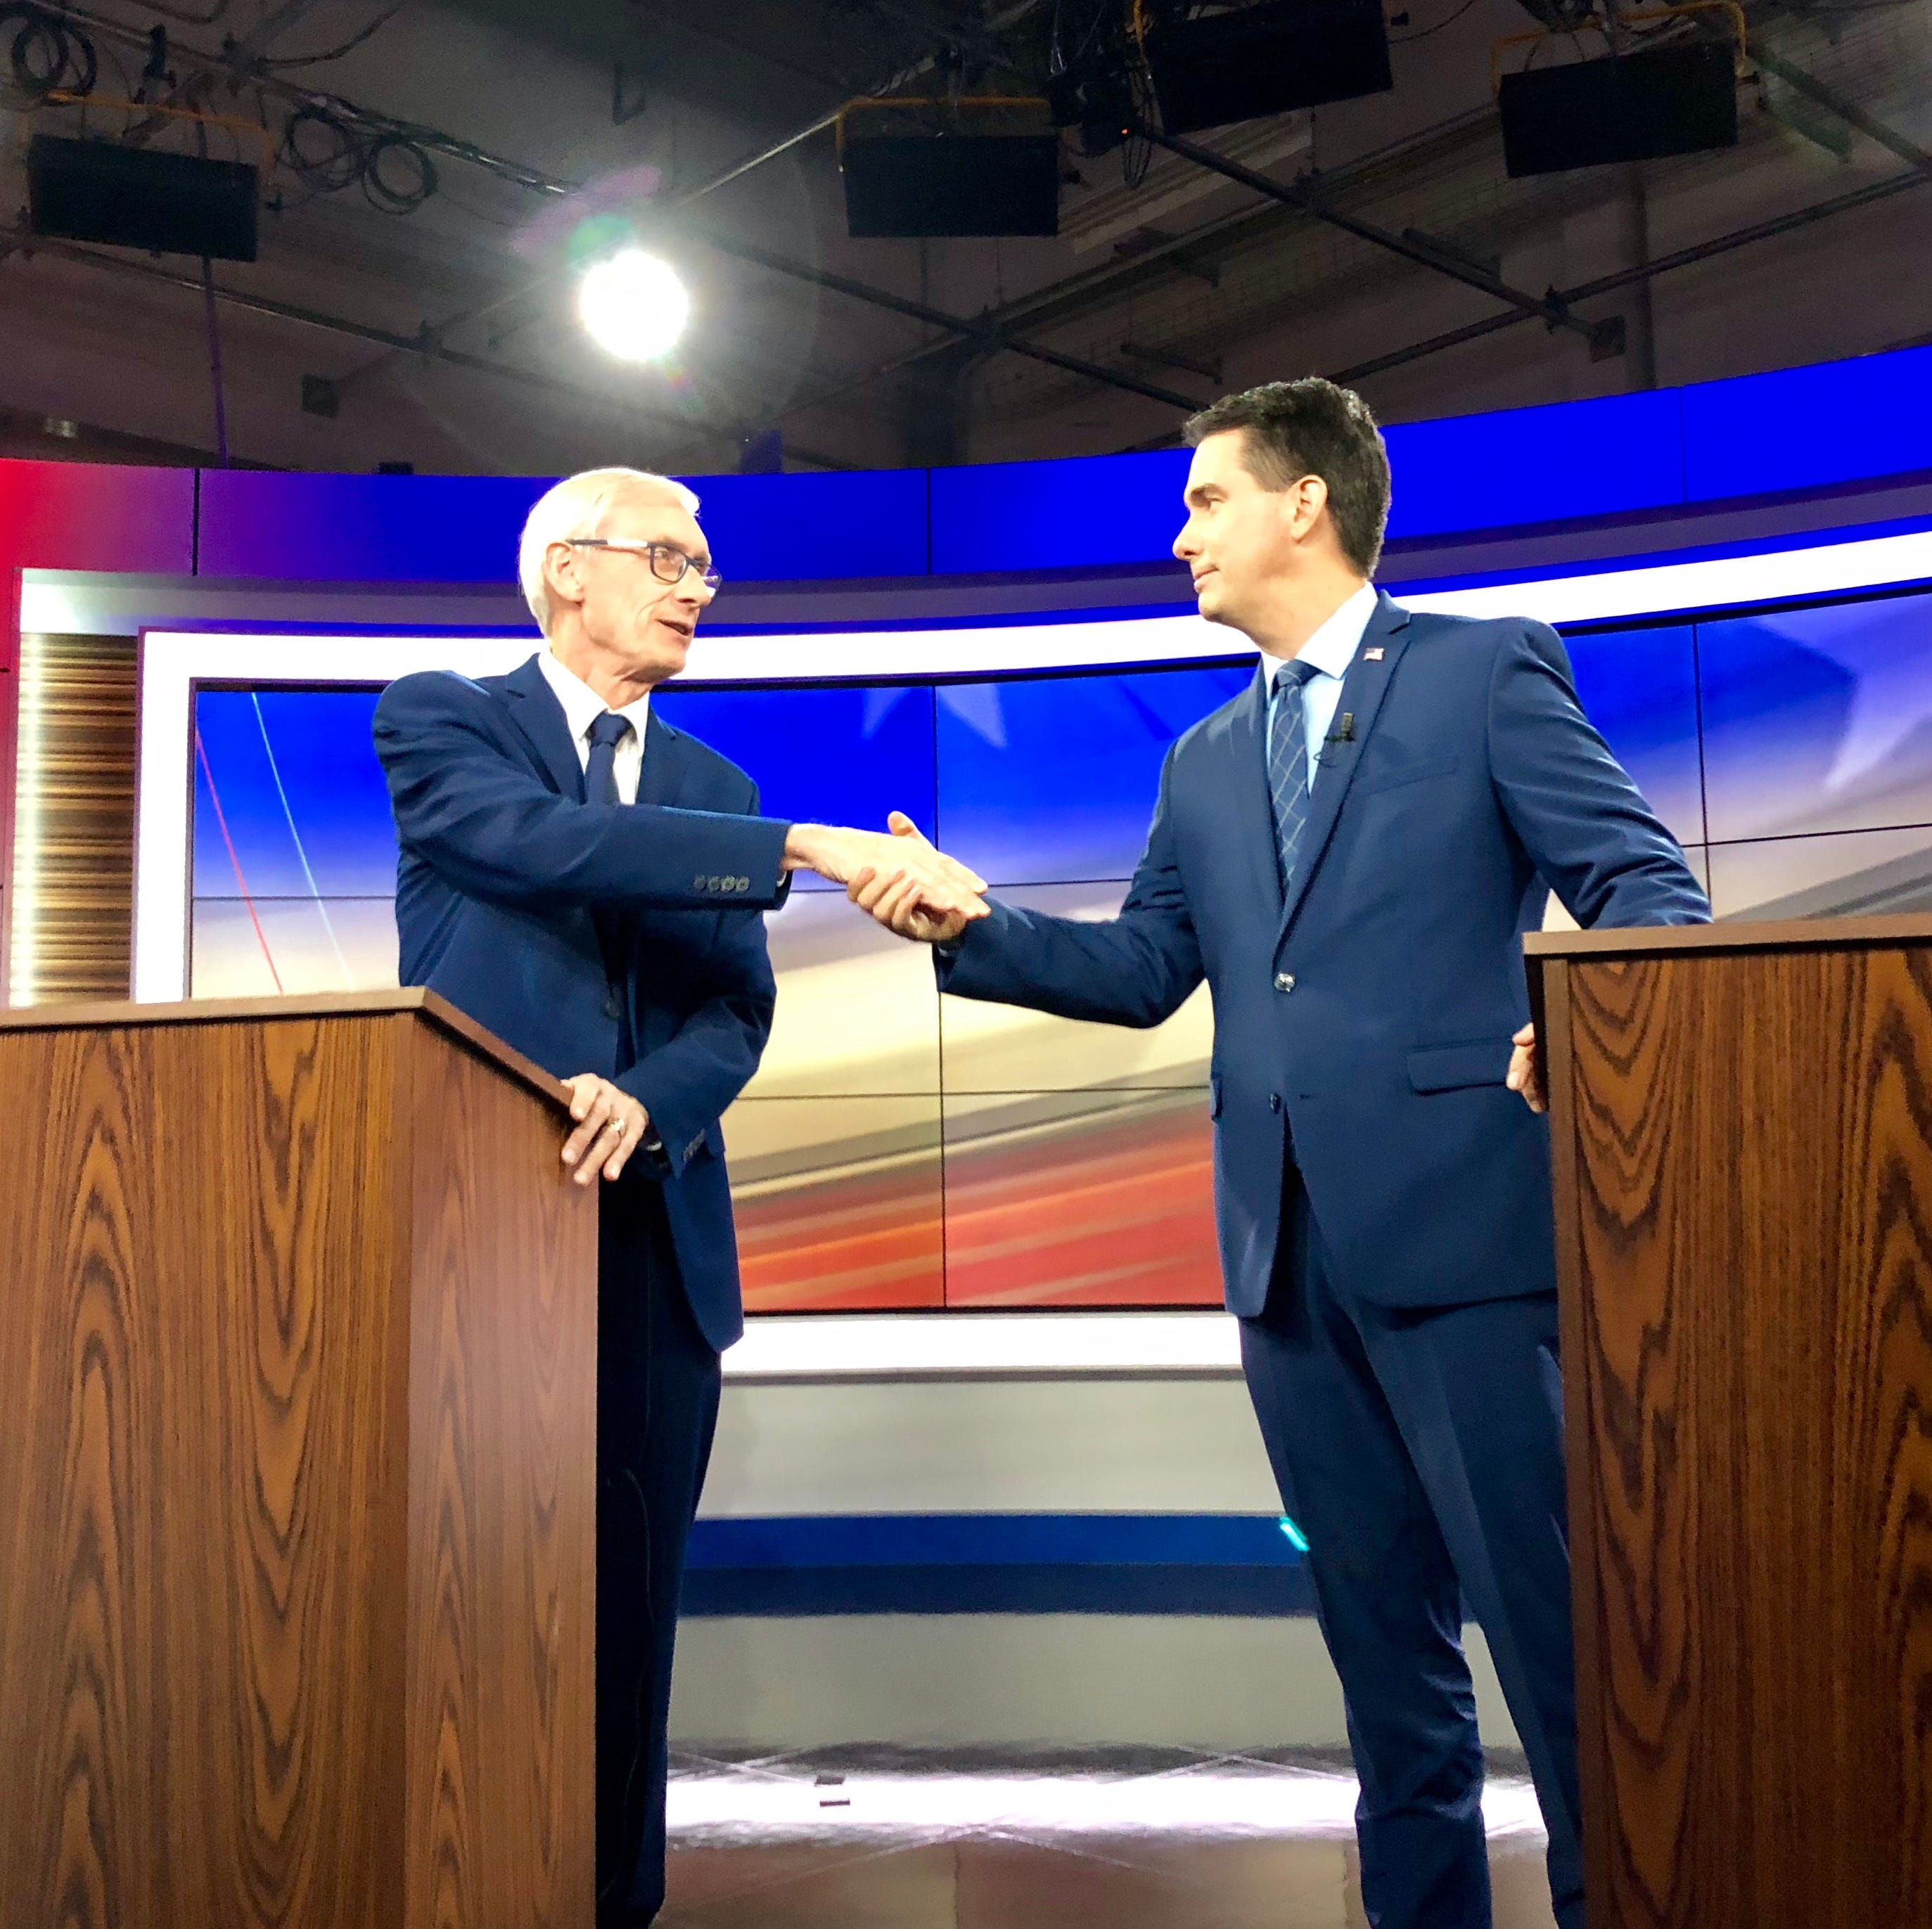 Scott Walker and Tony Evers spar over immigration, taxes, health care in first debate